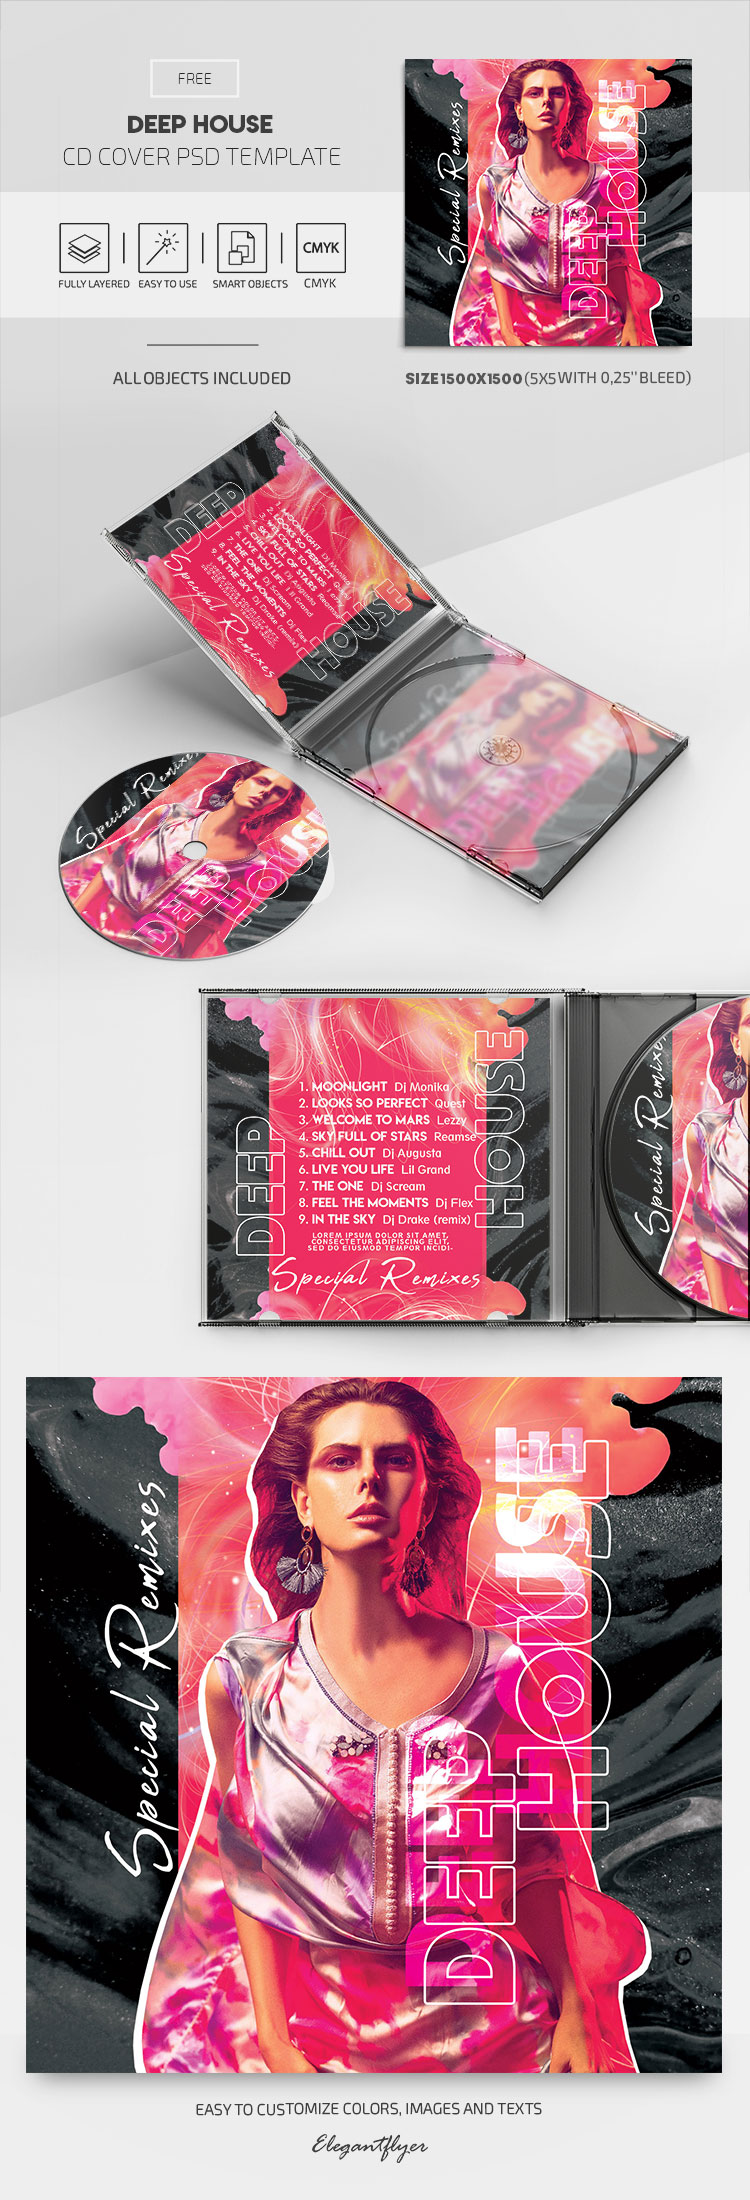 Deep House – Free CD Cover PSD Template